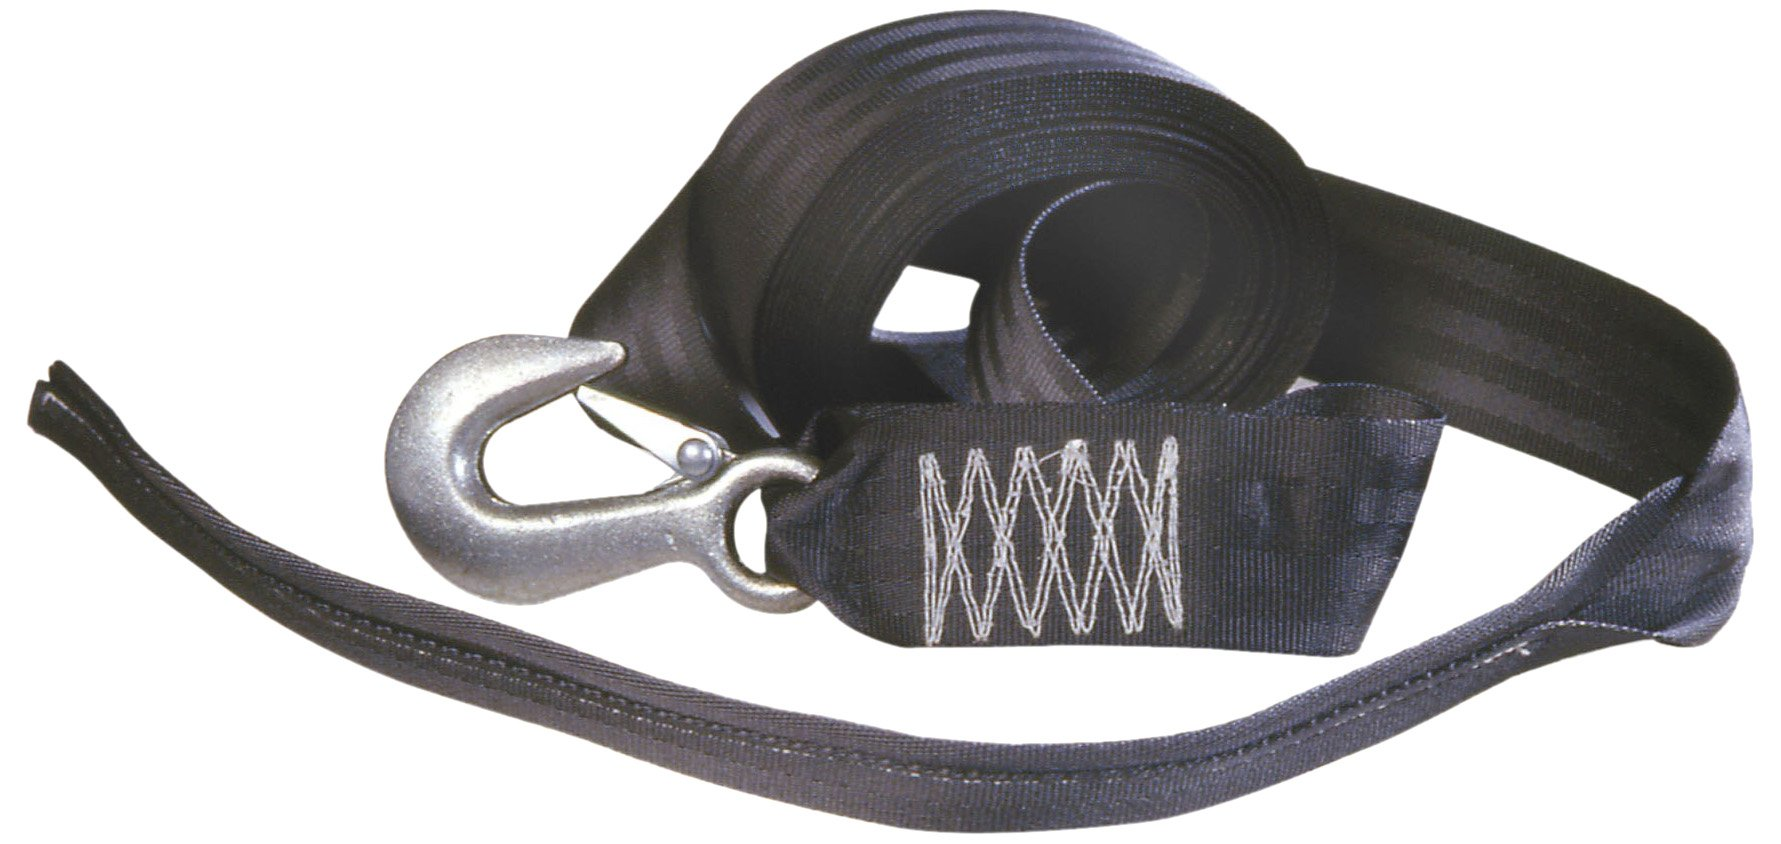 Tie Down 50472 2'' x 20' Winch Strap with Tail